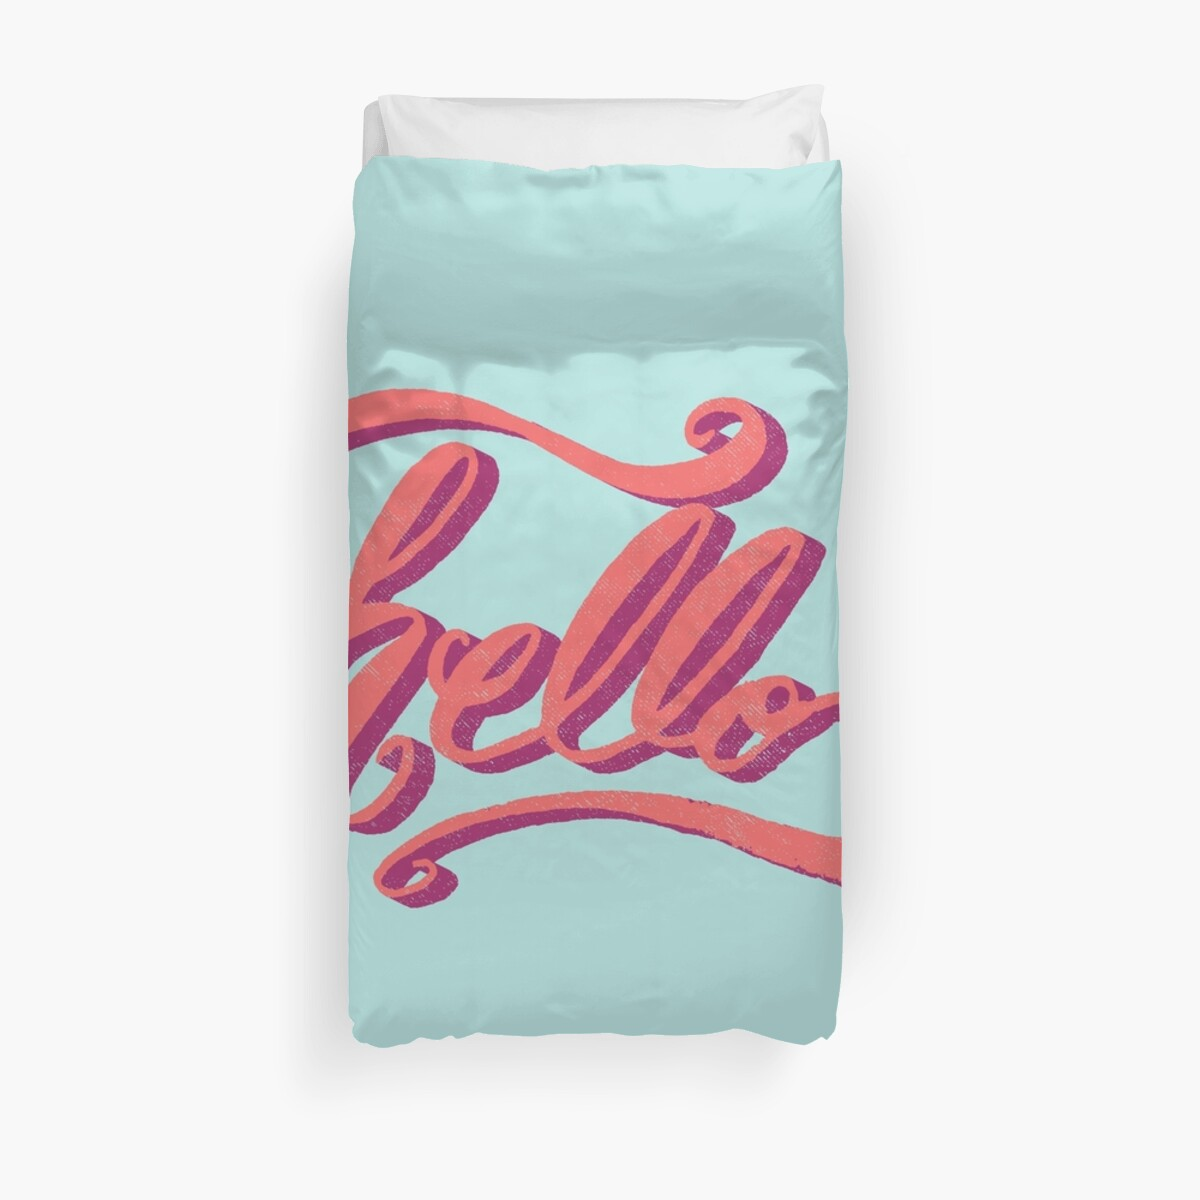 Quot Hey Hi Hello Quot Duvet Covers By Jess Emery Redbubble